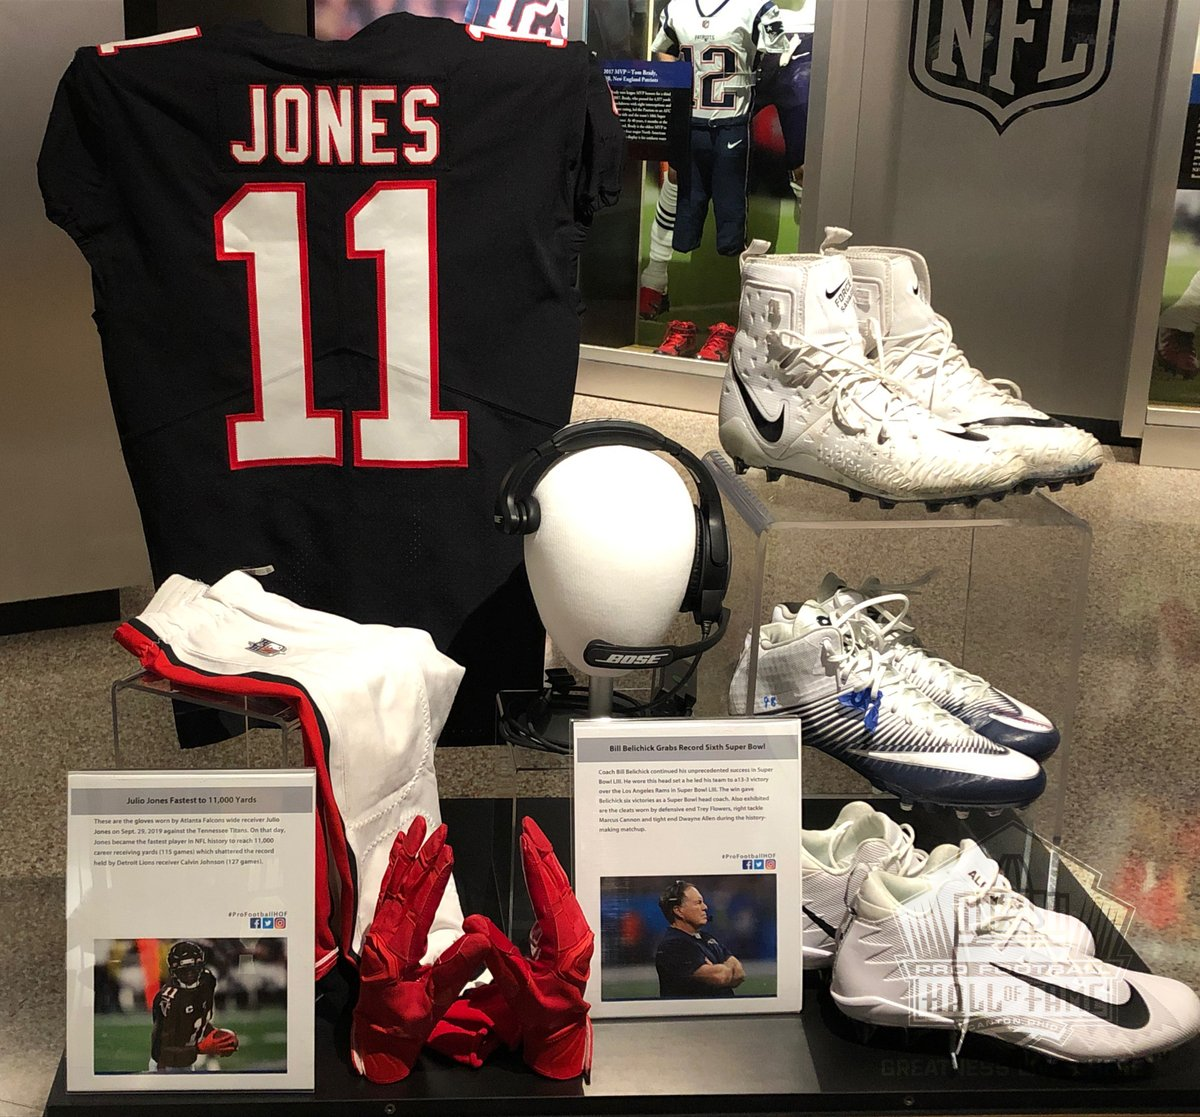 Pro Football Hall Of Fame On Twitter Now On Display In Canton The Jersey Juliojones 11 Wore When He Became The Fastest Player In Nfl History To Reach 11 000 Career Receiving Yards The